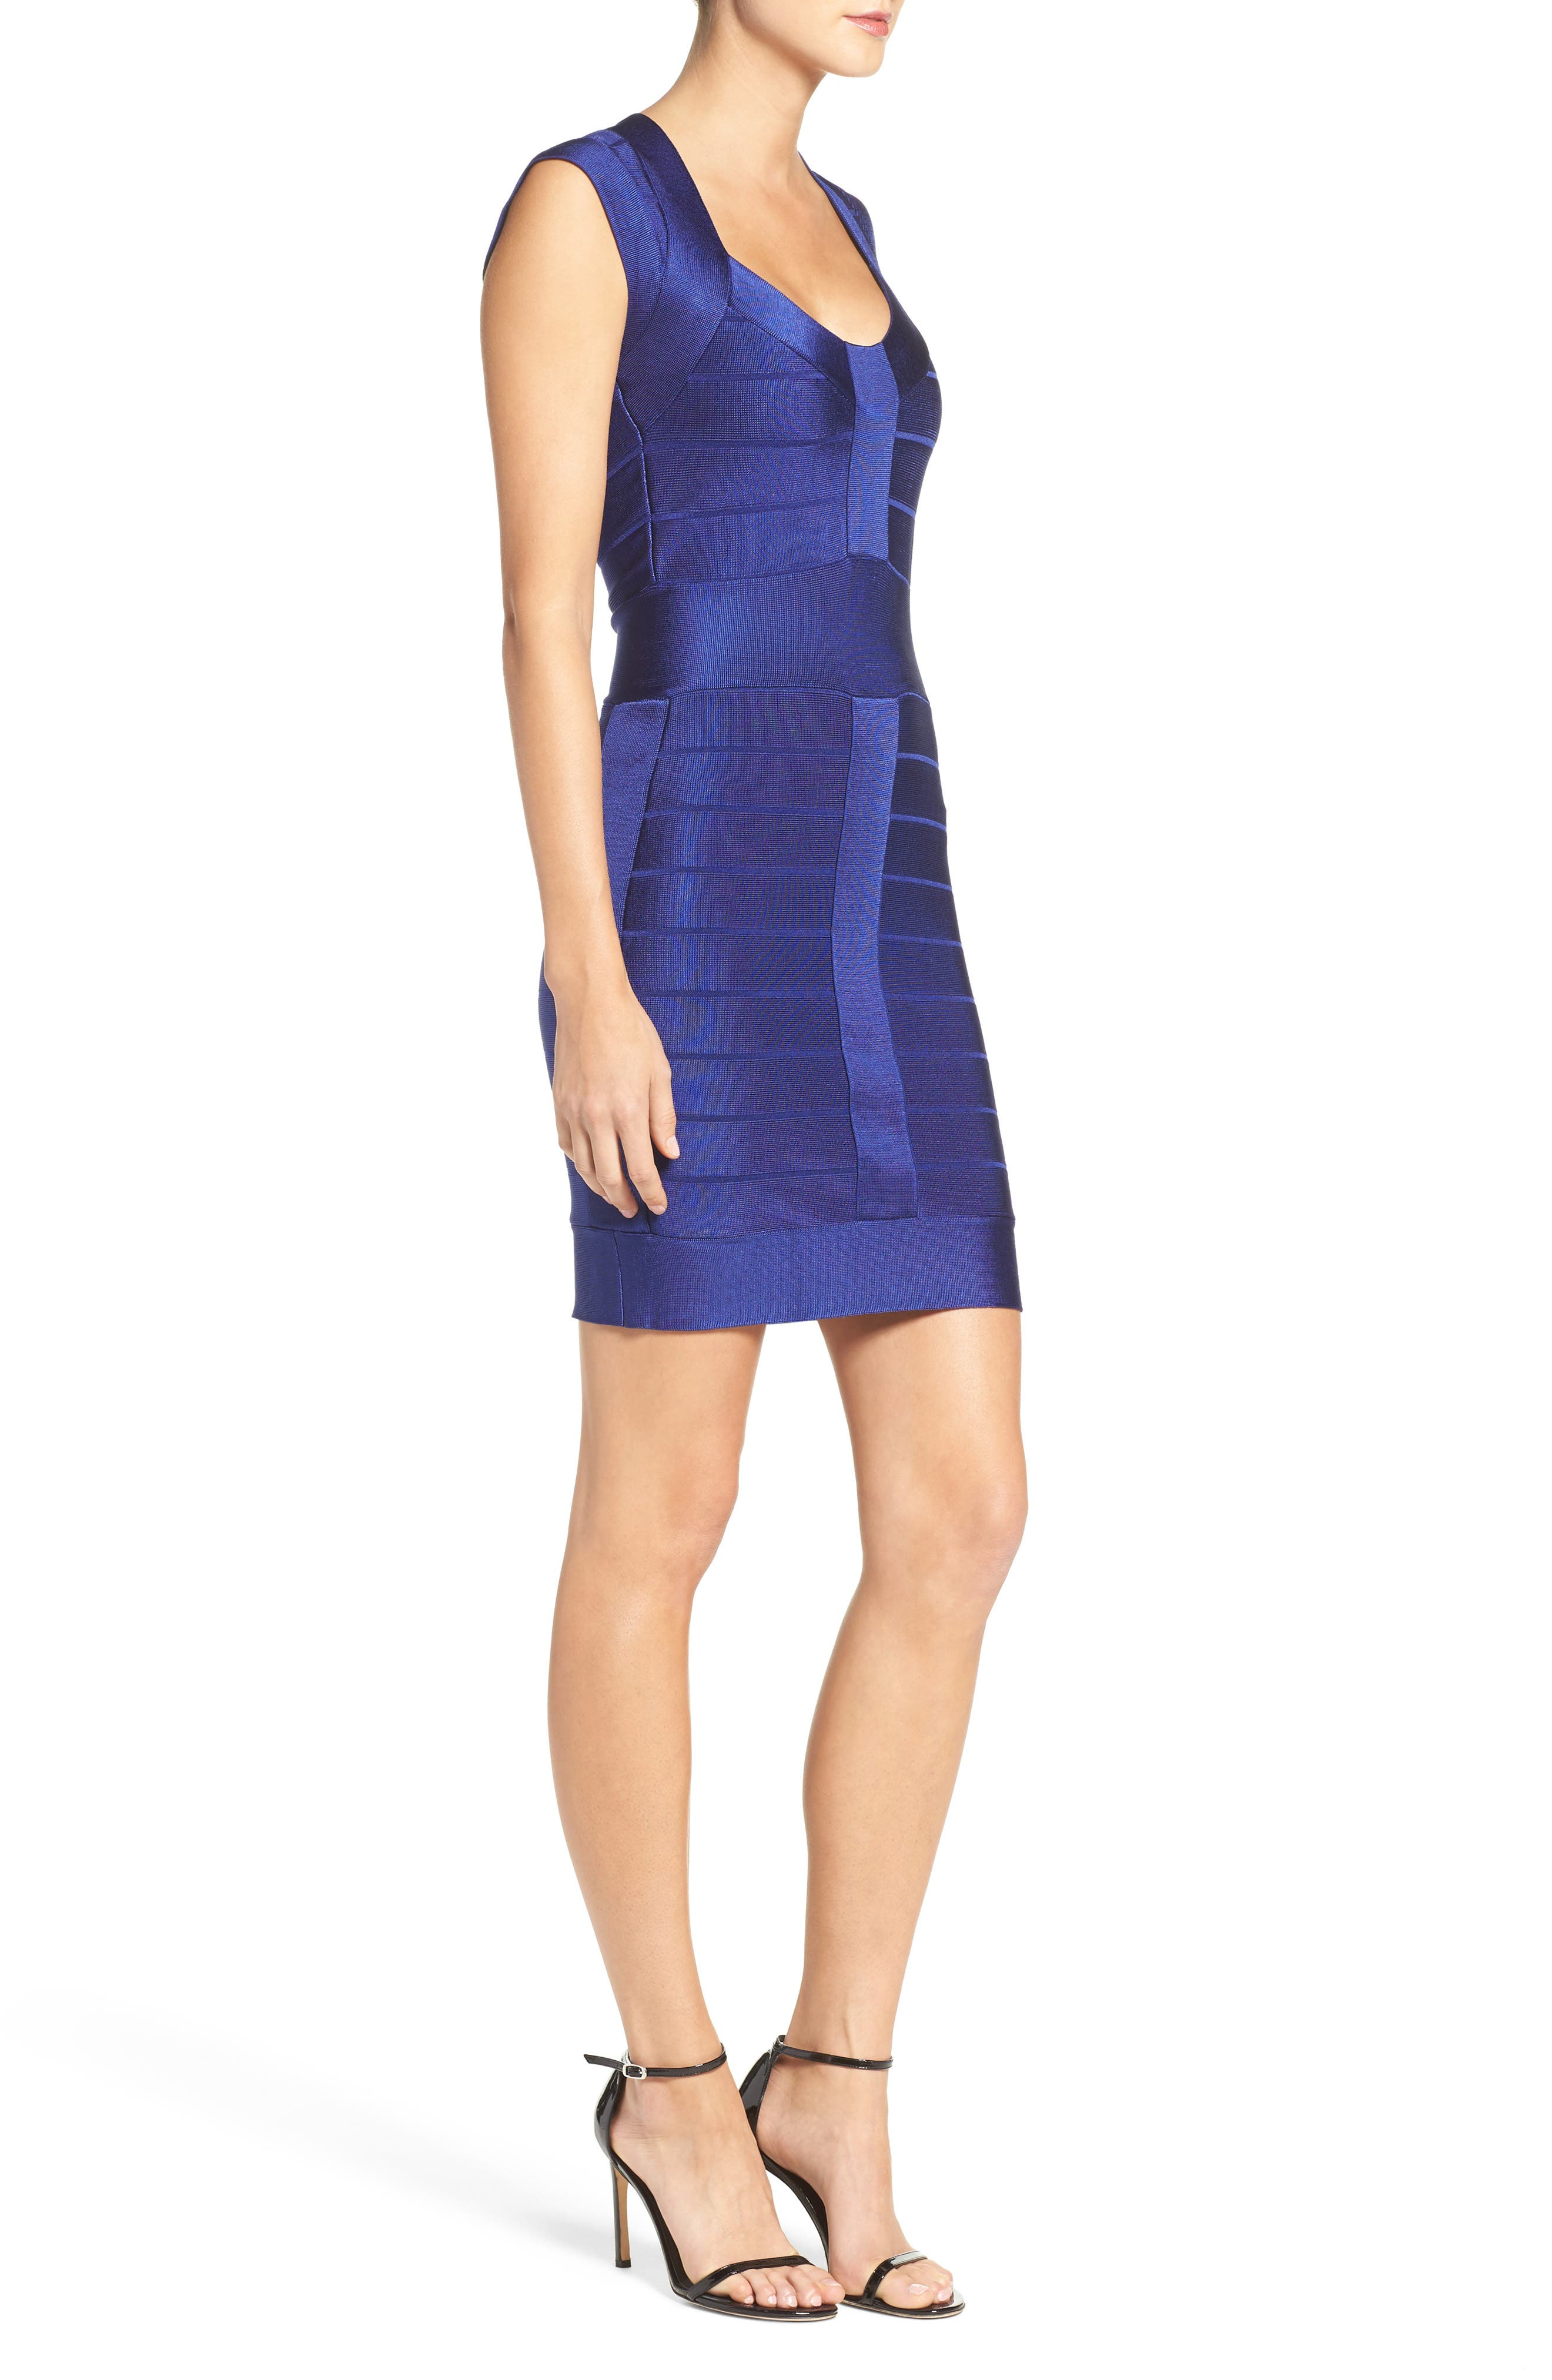 Spotlight Bandage Dress,                             Alternate thumbnail 3, color,                             431